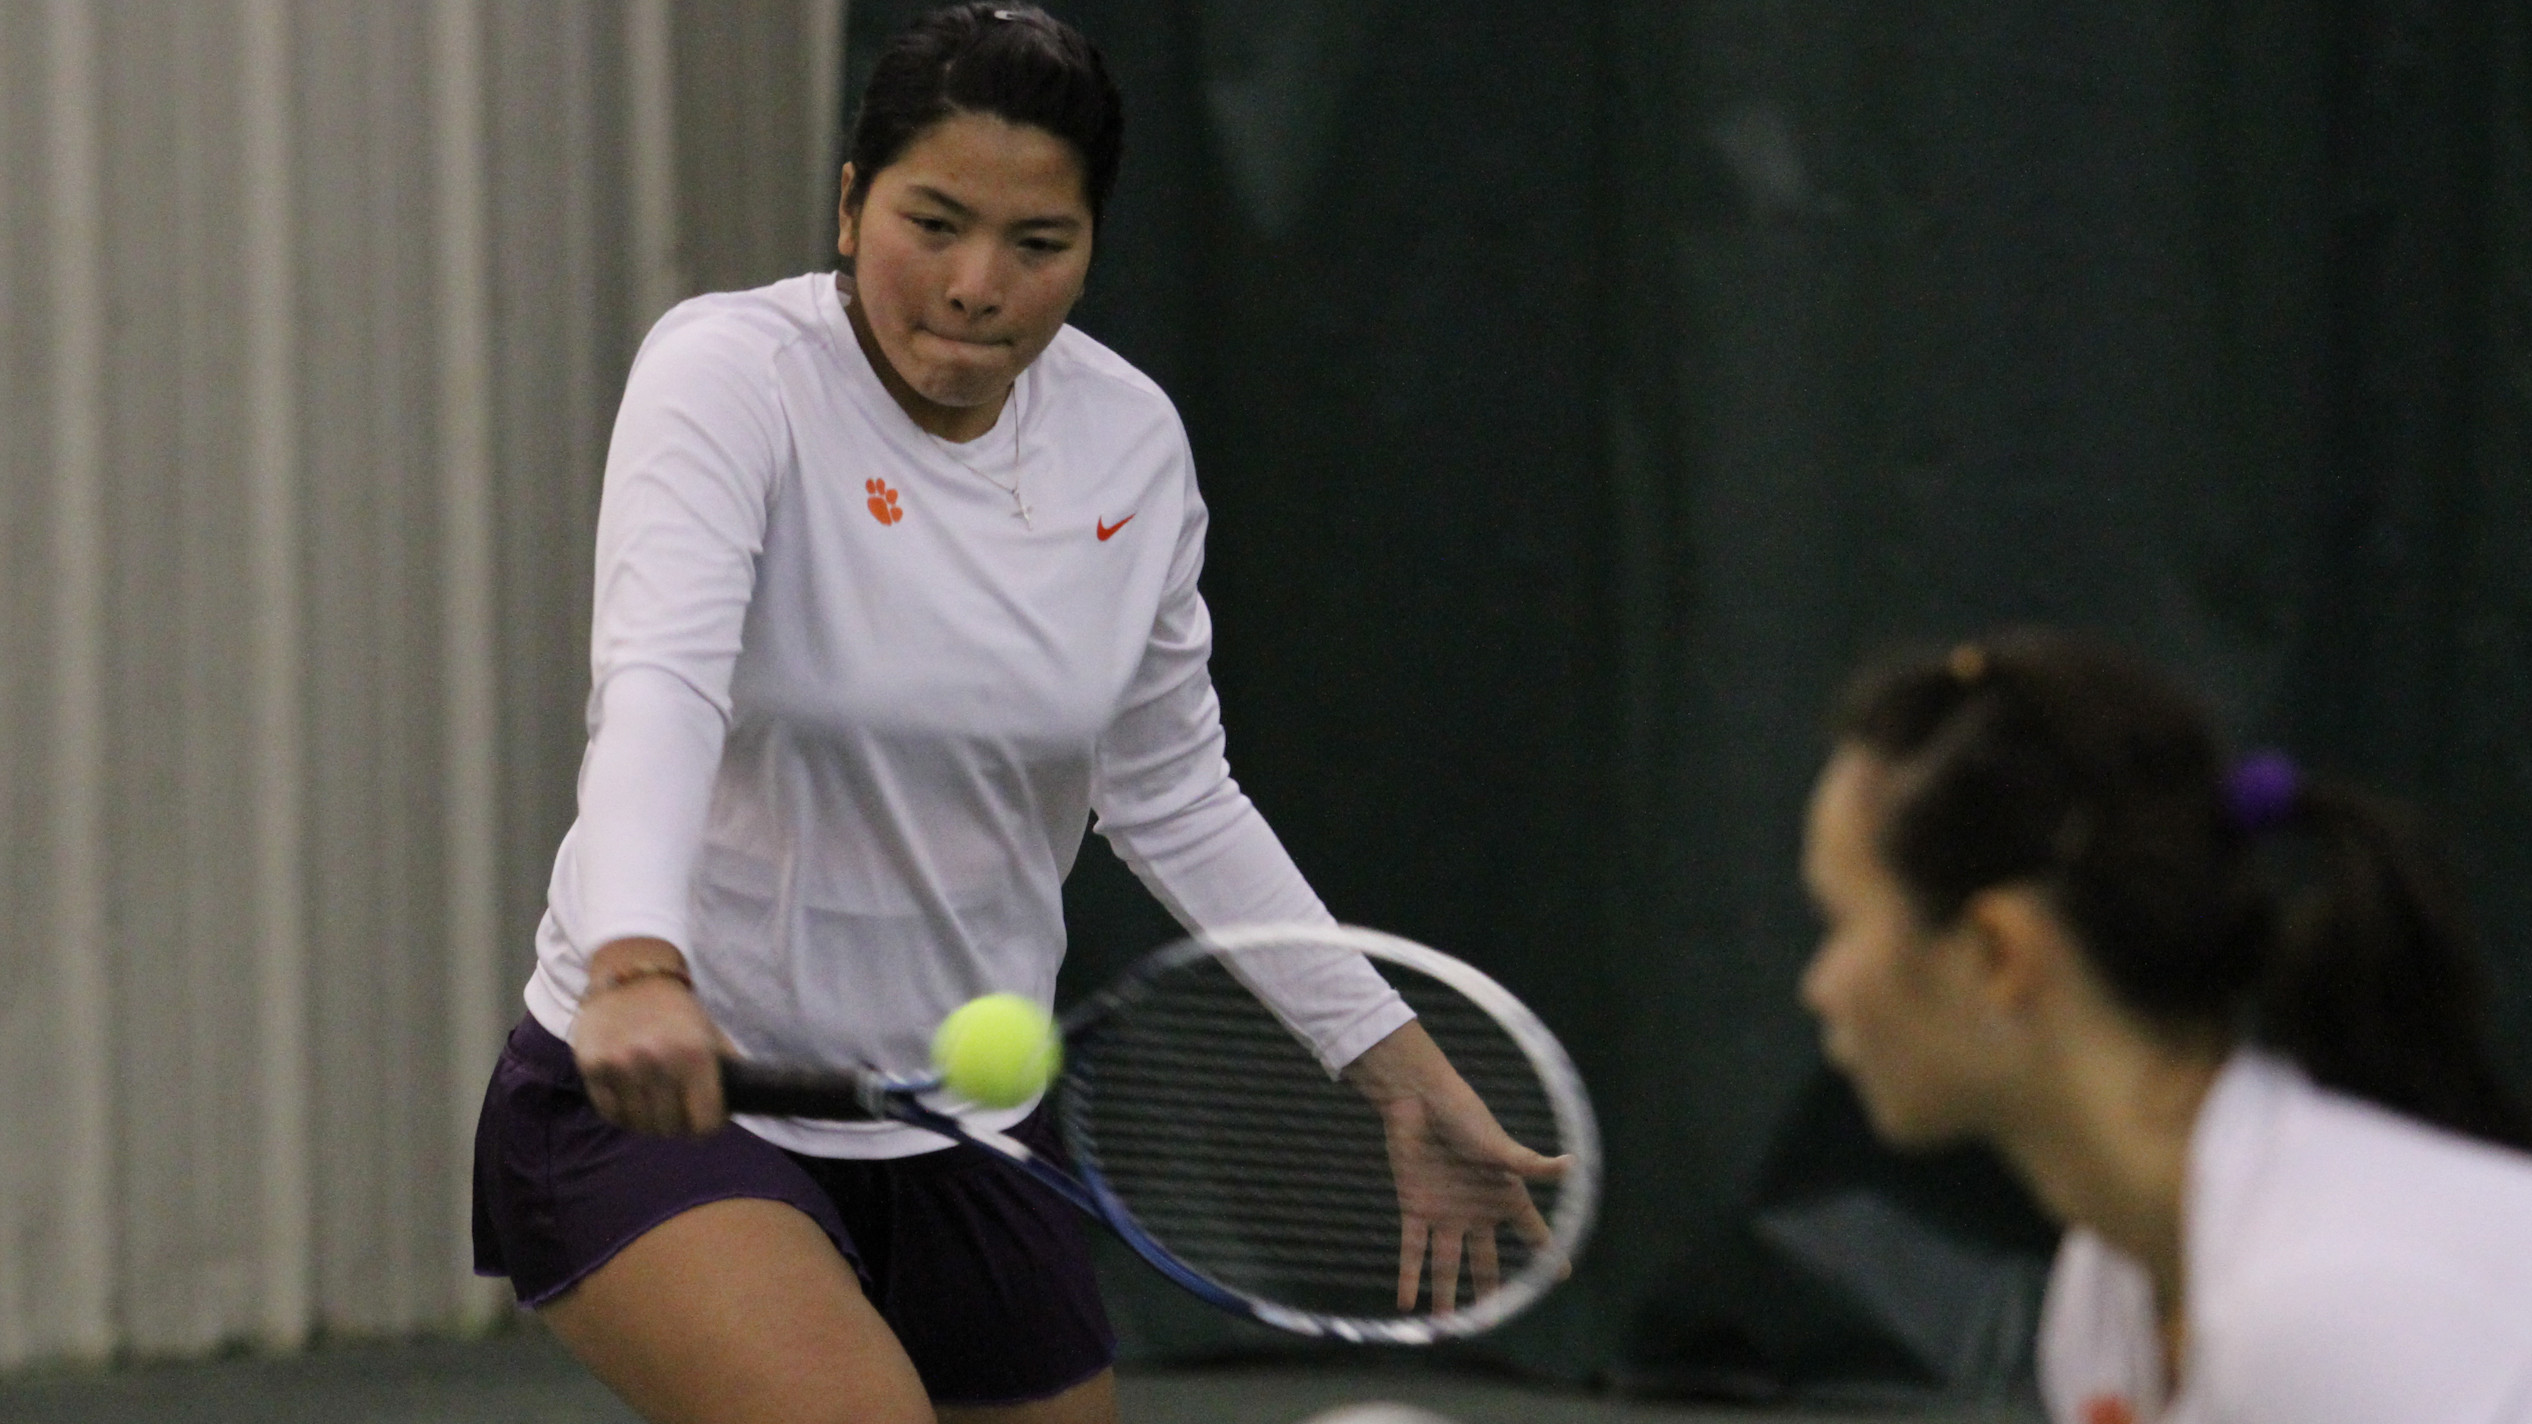 Comebacks Rule the Day as No. 13 Clemson Upends No. 11 Michigan, 4-2